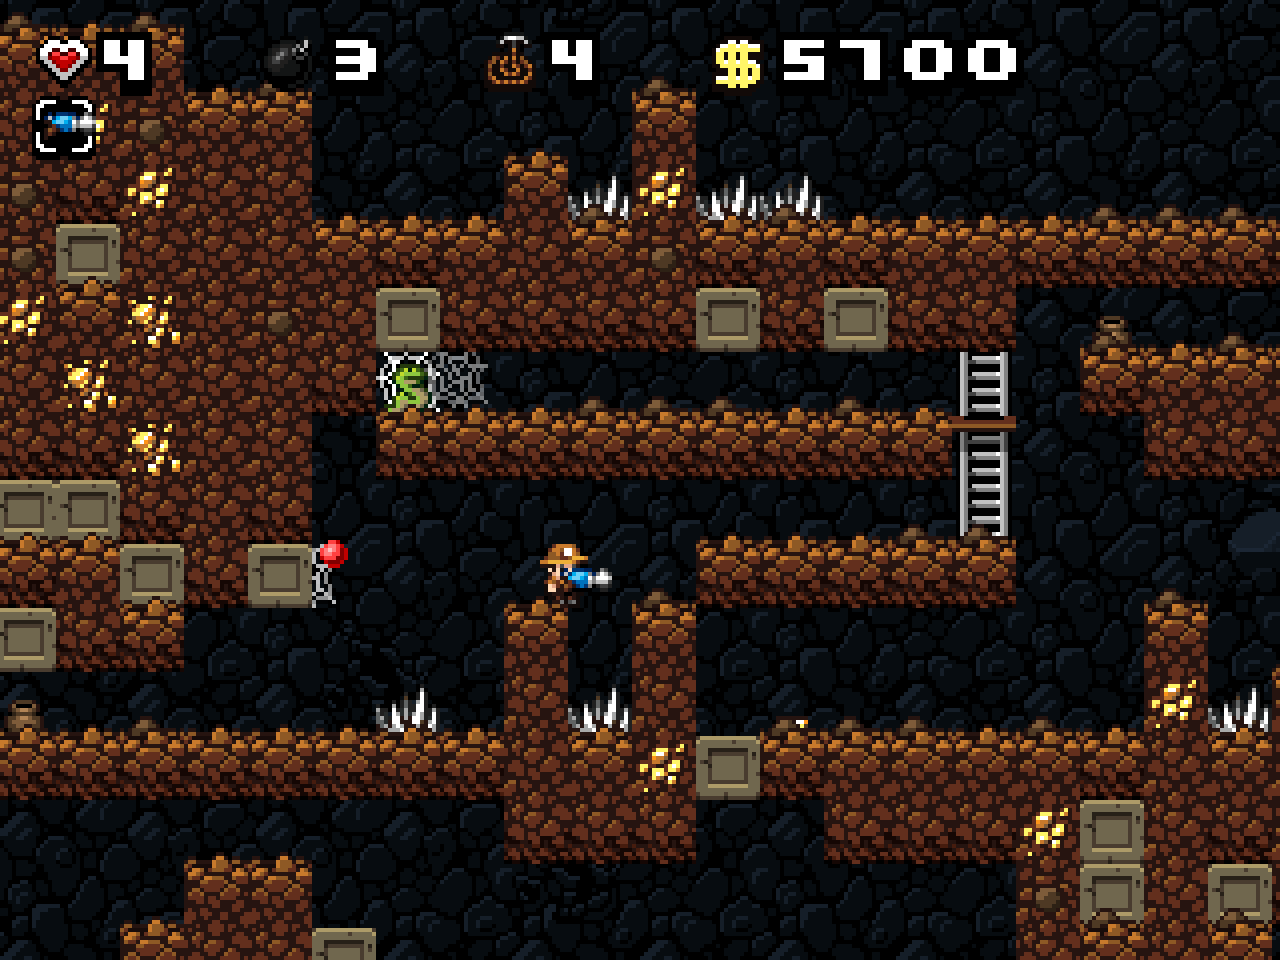 spelunky screenshots for windows mobygames